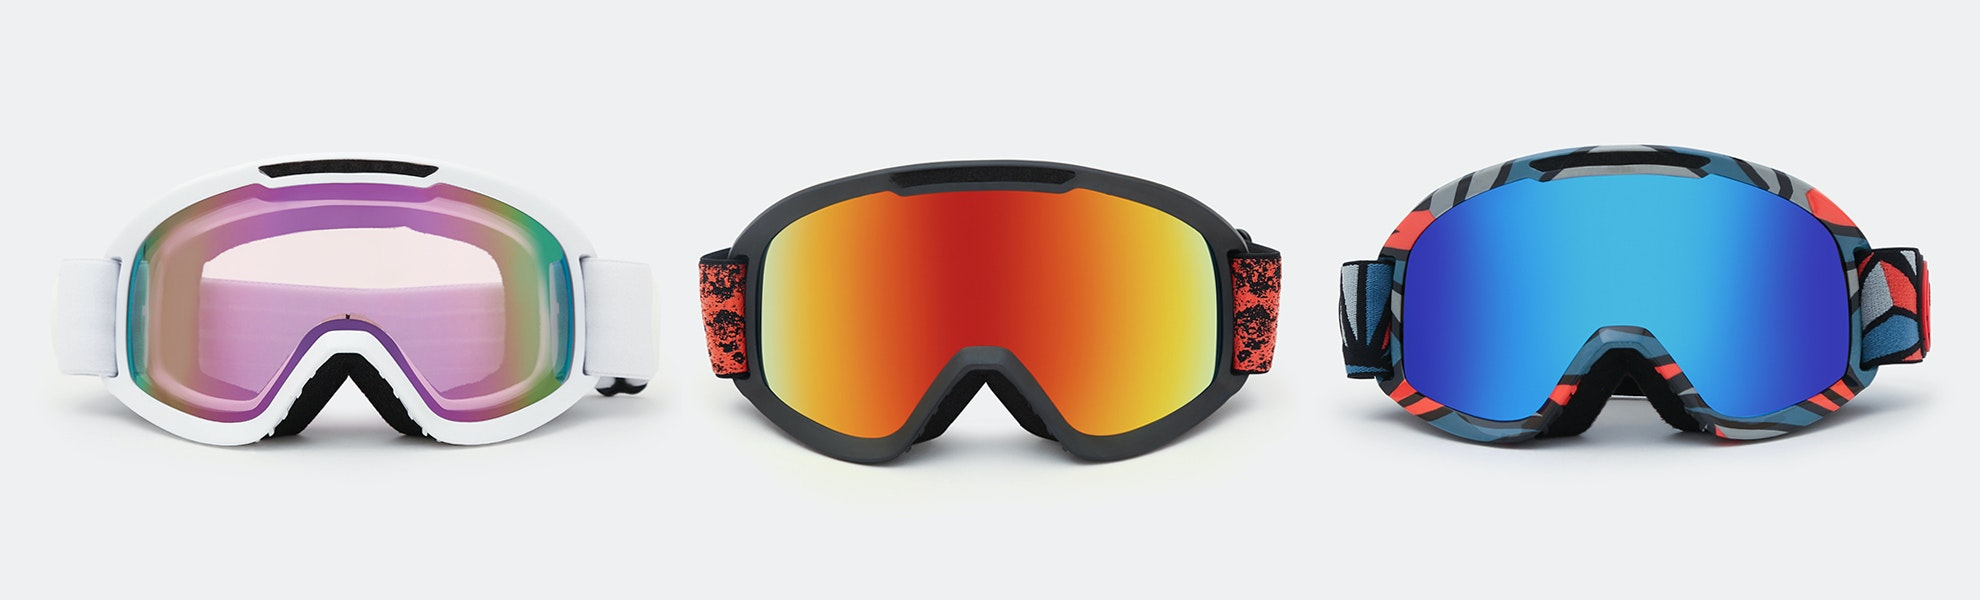 Dragon Alliance DX2 Ski Goggles w/ Replacement Lens